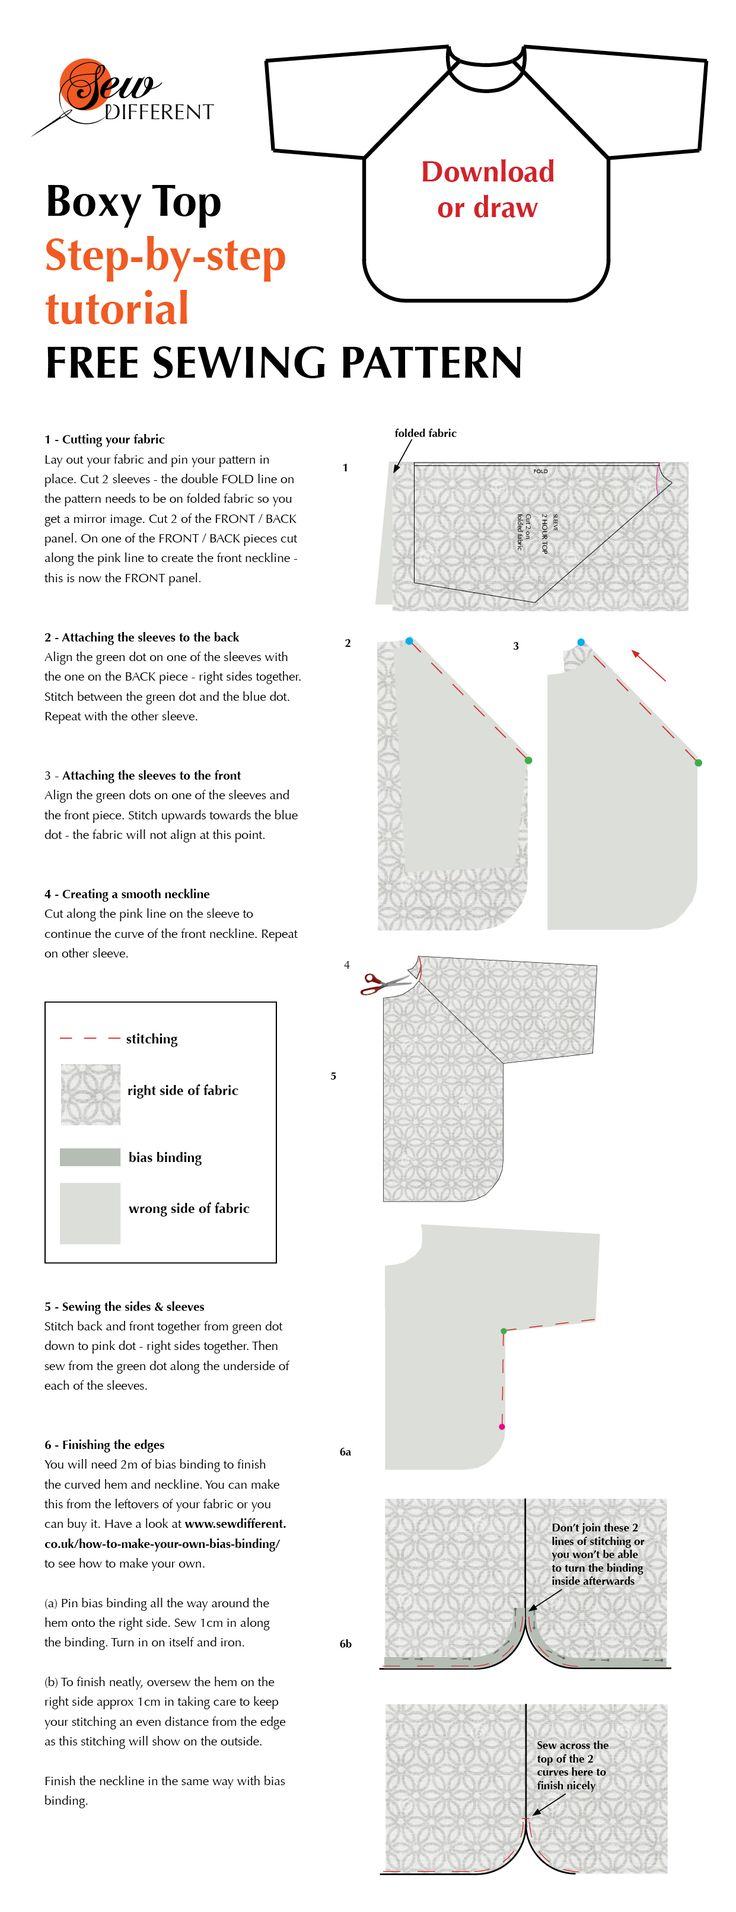 Boxy top free sewing pattern from Sew Different. It says make in 2 hours but I make it in less. Tutorial for every step of the way. I have made this top so many times - looks different in every fabric. Love it!